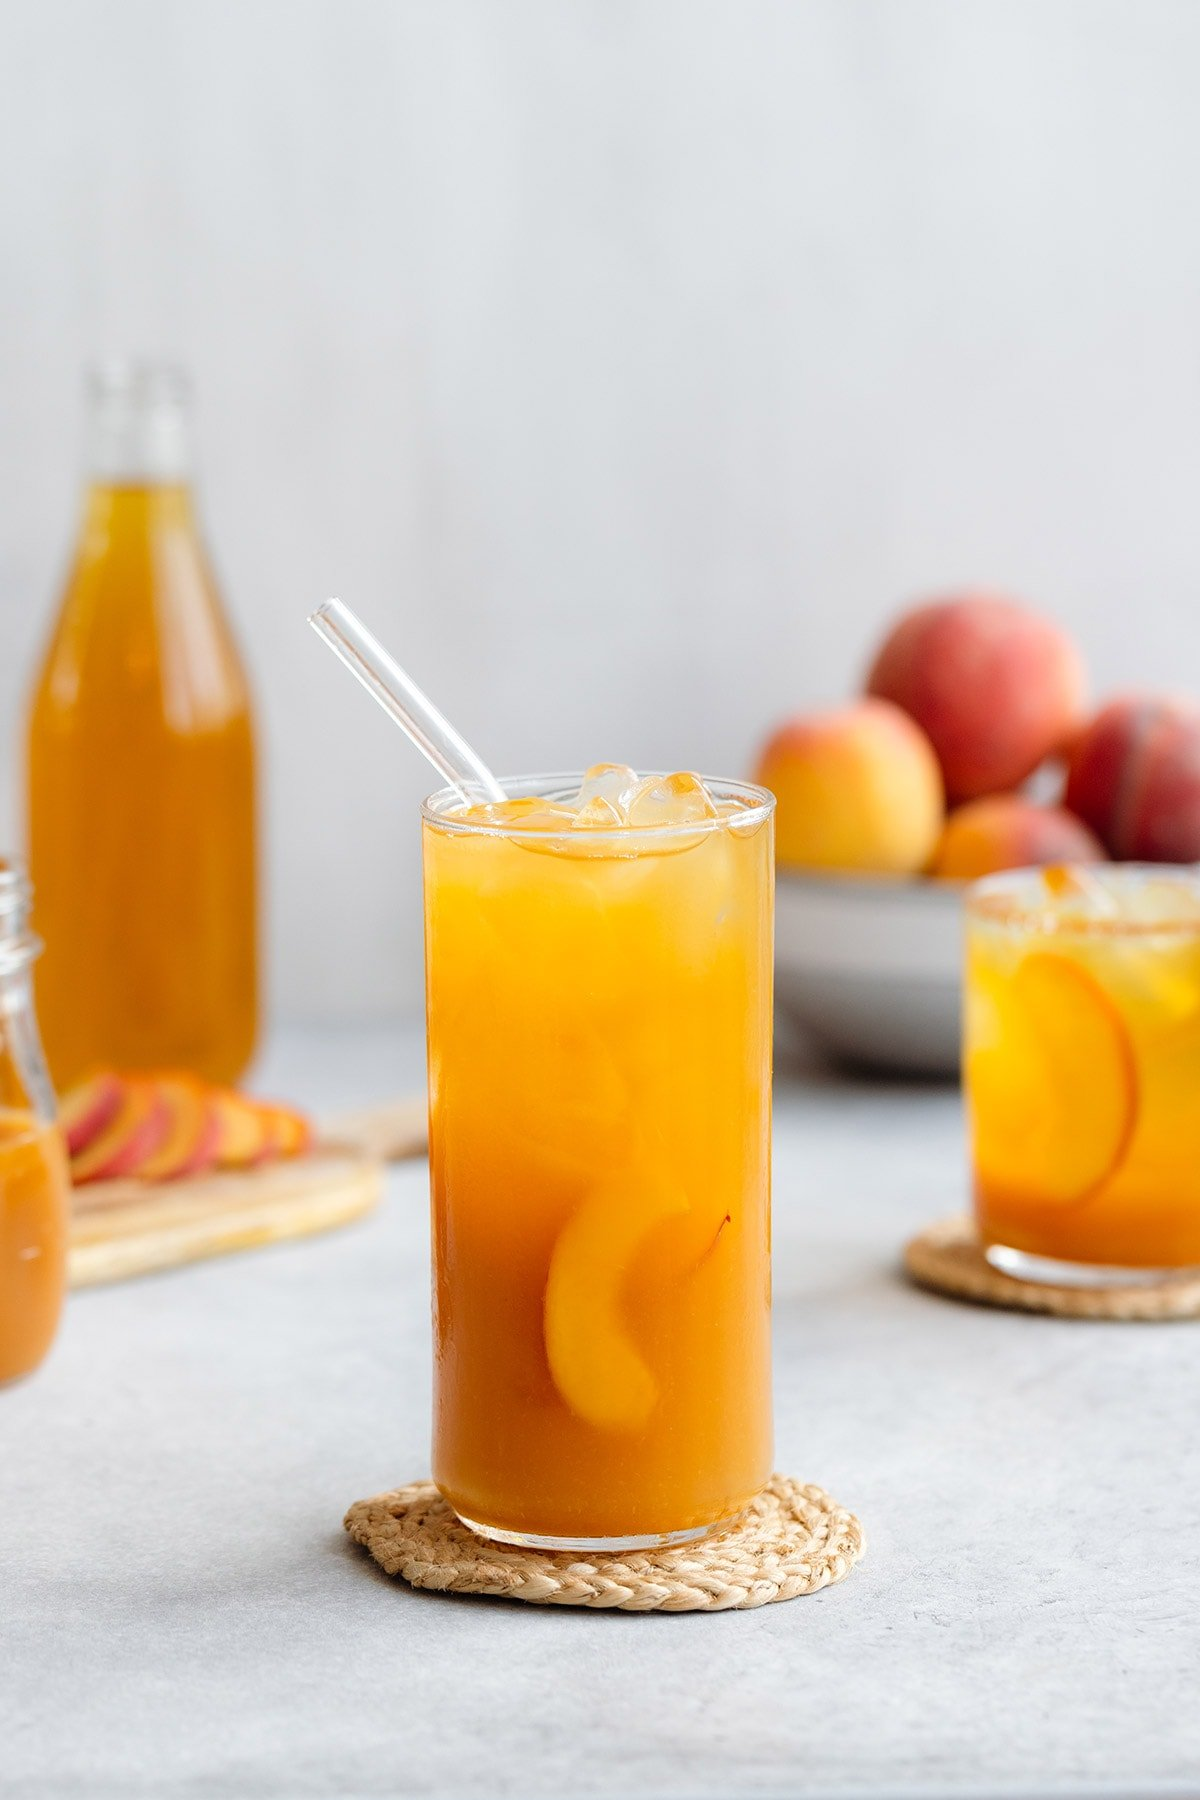 Iced tea in a tall glass with ice and peach slices on a light grey background with more peaches in a bowl in the back.